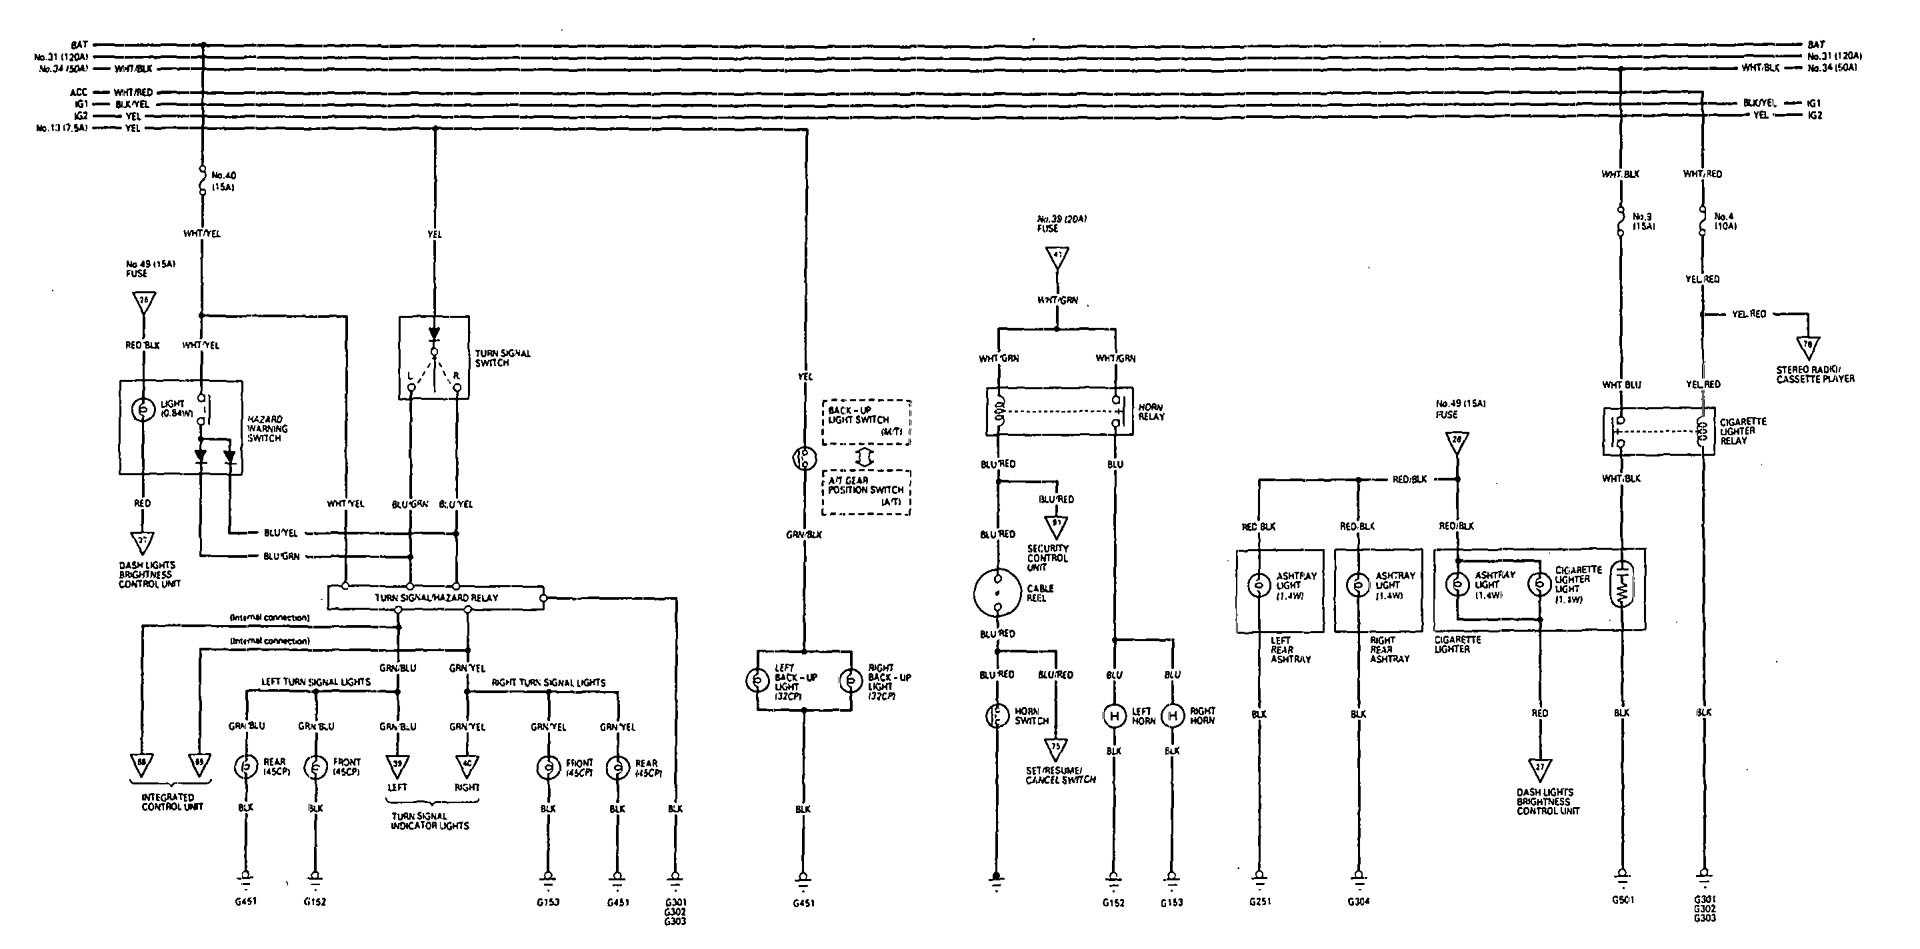 Acura Legend  1993  - Wiring Diagram - Reverse Lamp